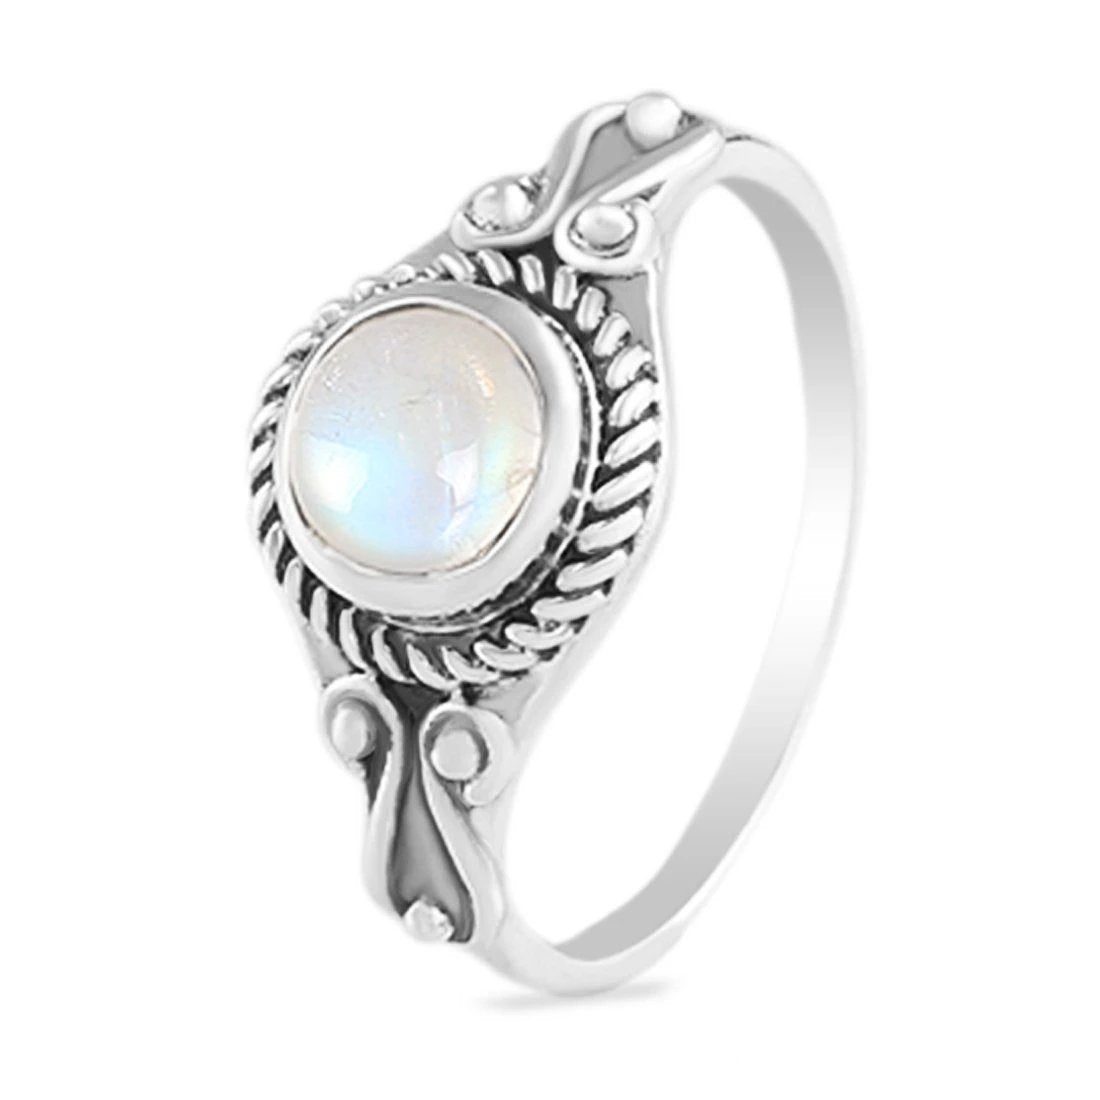 Moonstone Ring-Mirth Moonstone Ring 925 SILVER & MOONSTONE